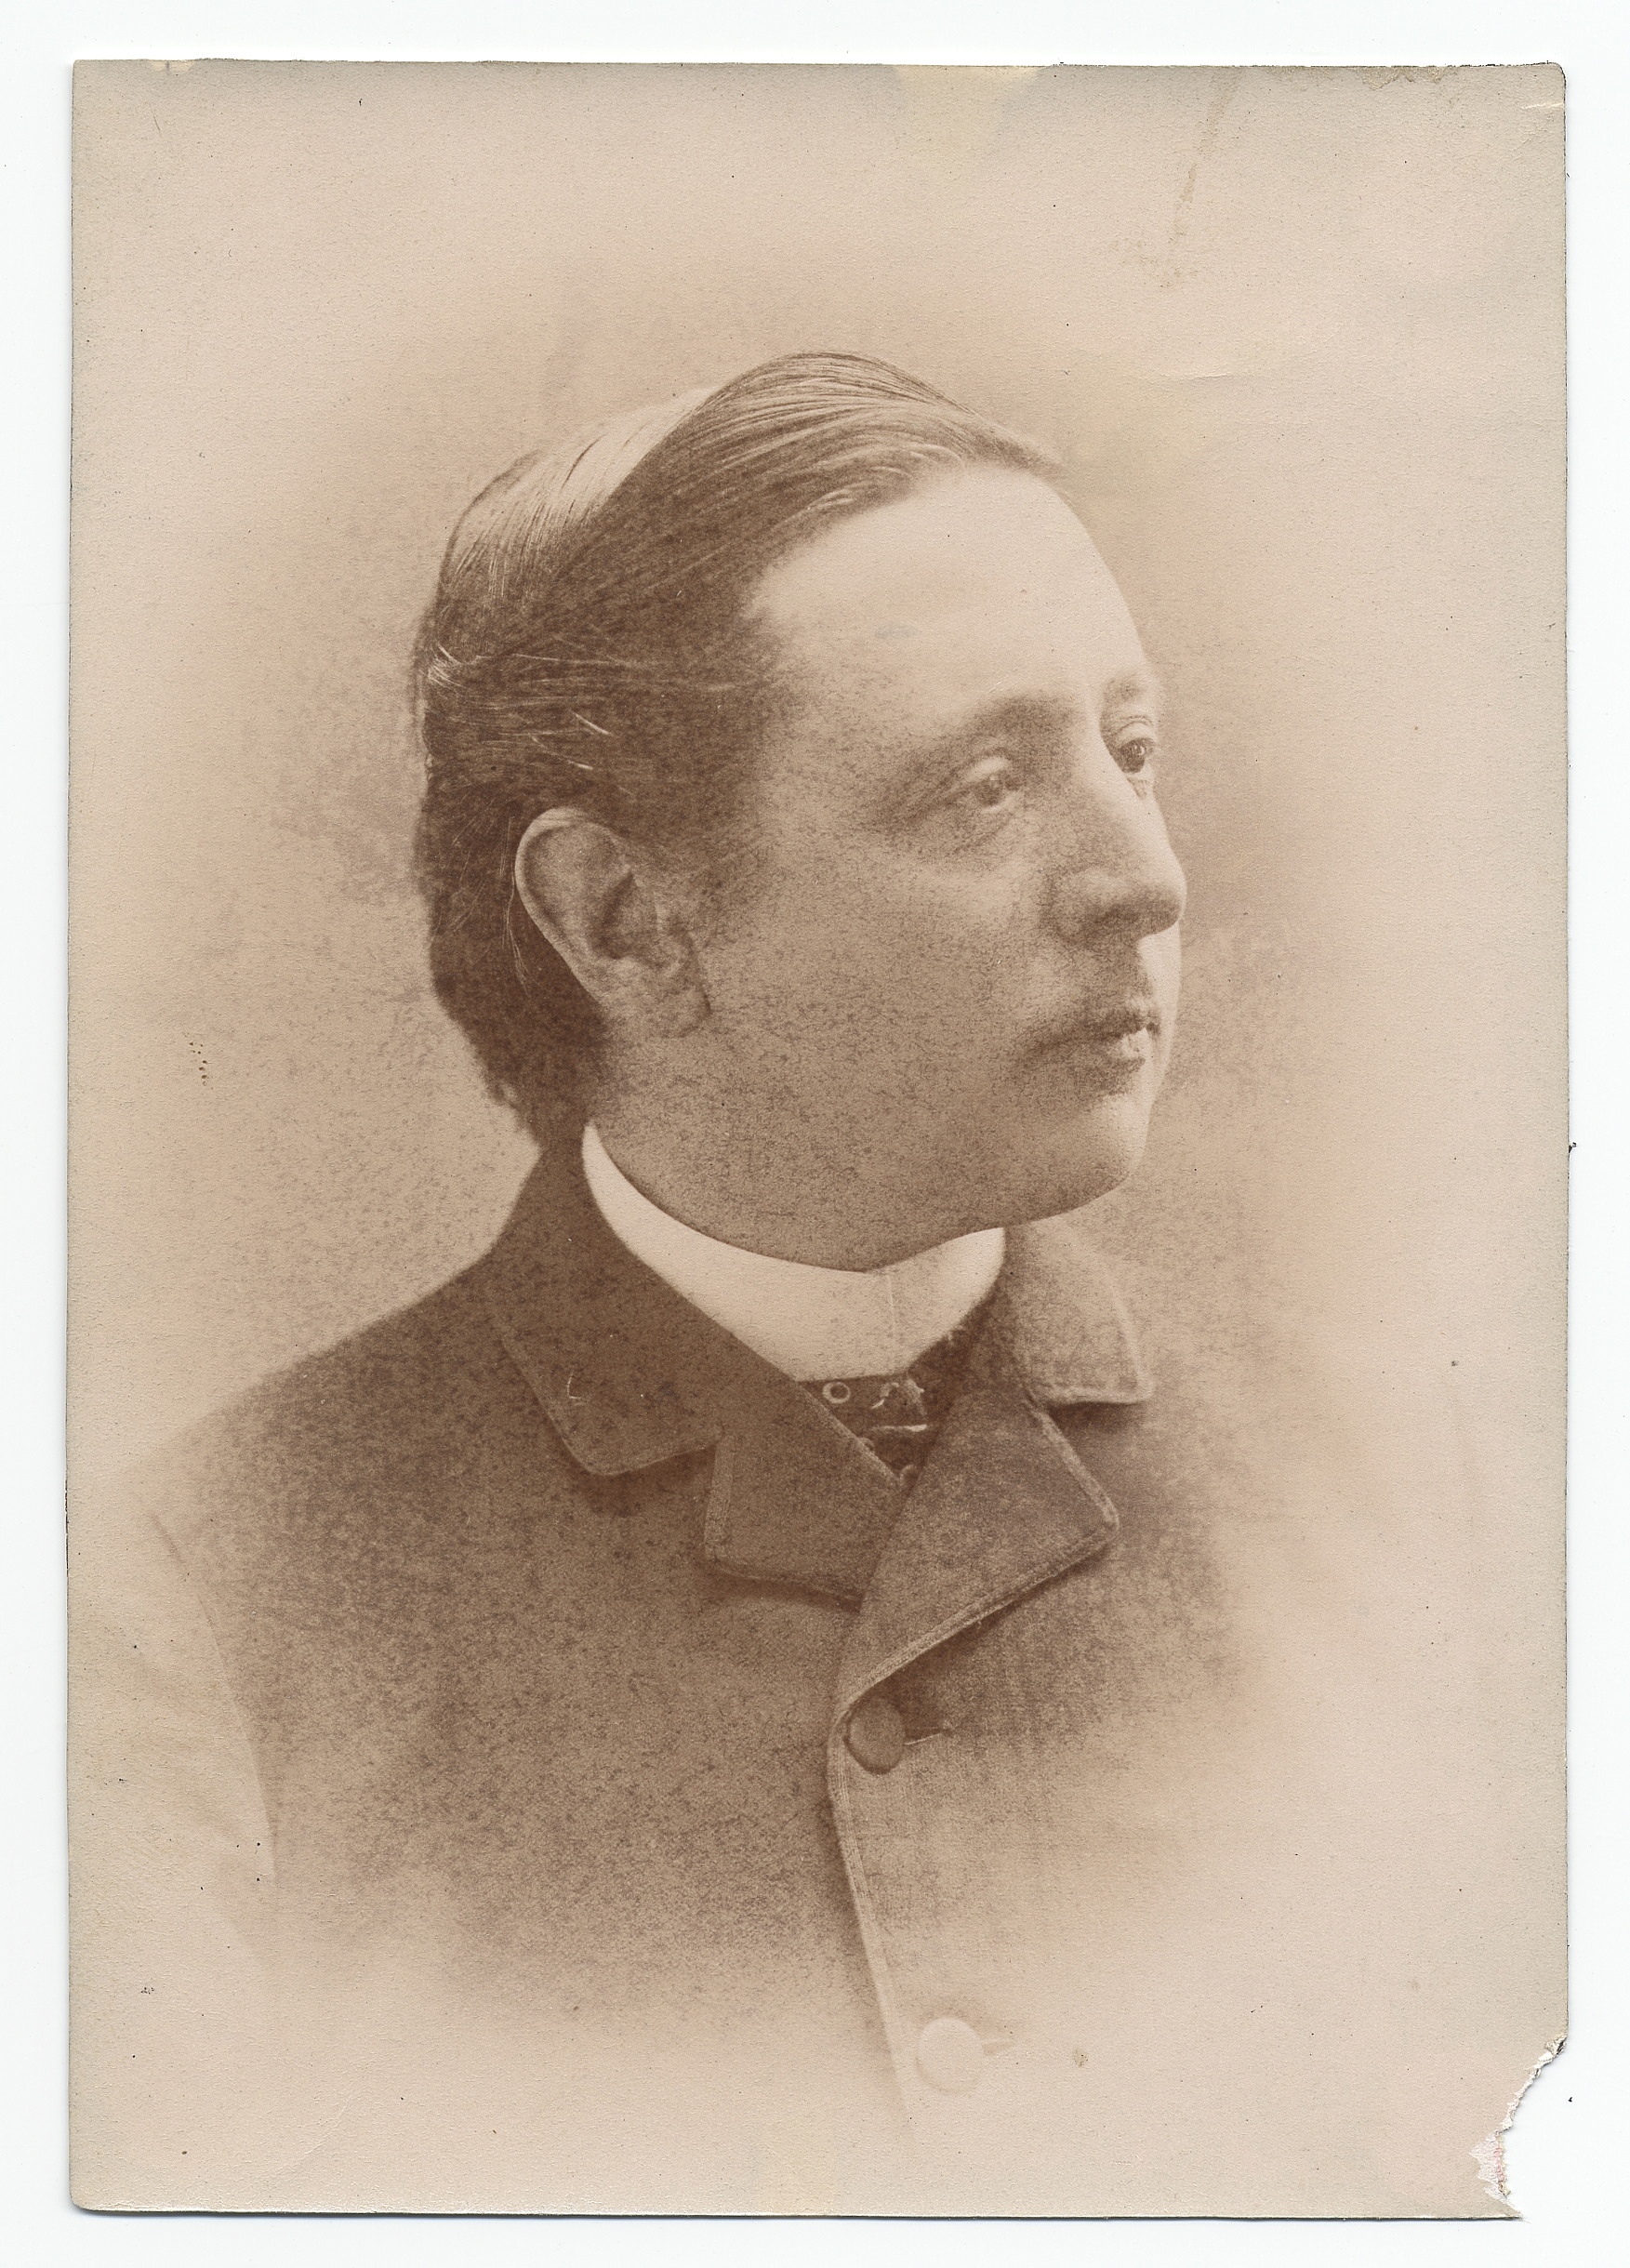 Head and shoulders photograph of Frederic Marlett Bell-Smith